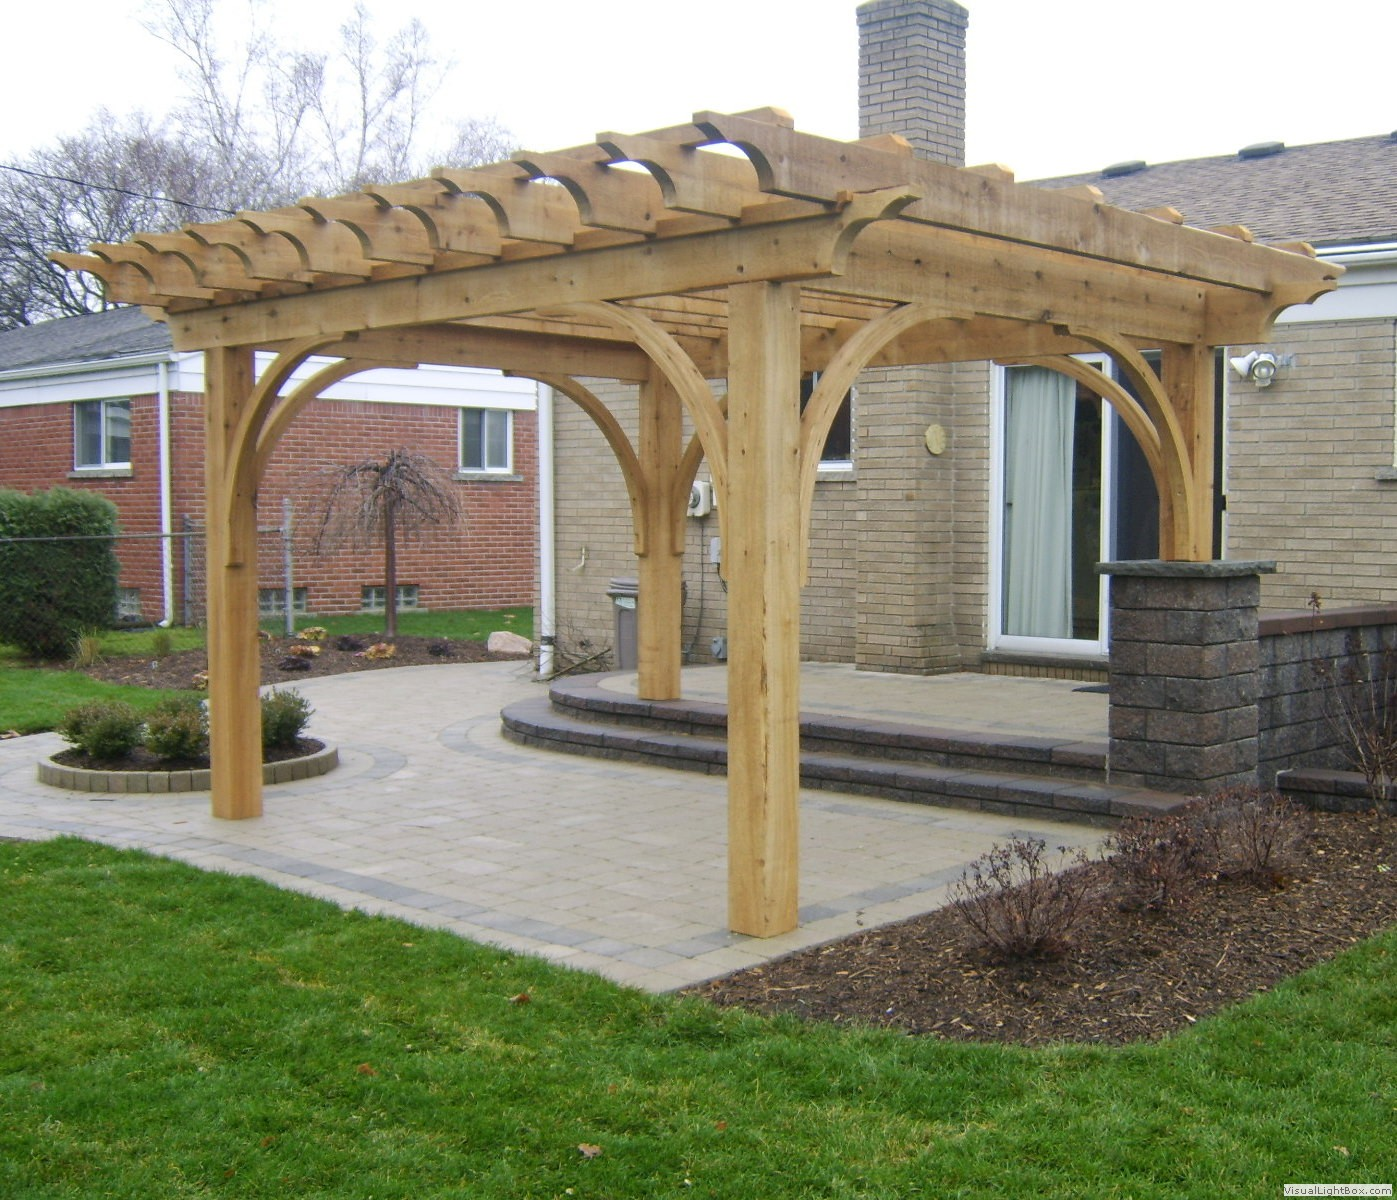 southeastern michigan custom pergolas timber structures photo gallery by gm construction in. Black Bedroom Furniture Sets. Home Design Ideas